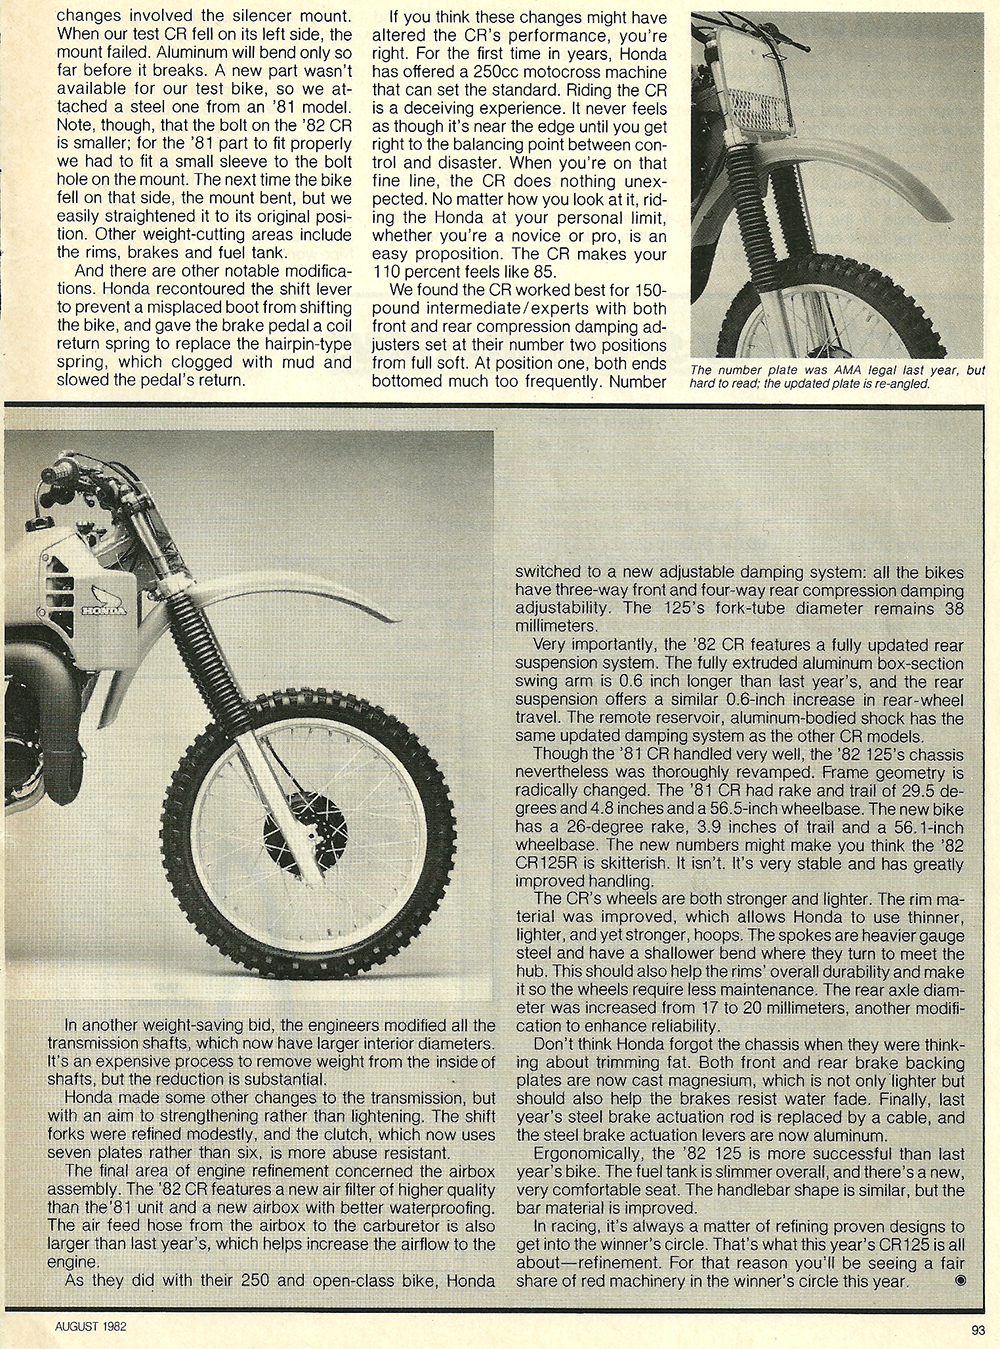 1982 Honda CR250R off road test 7.jpg